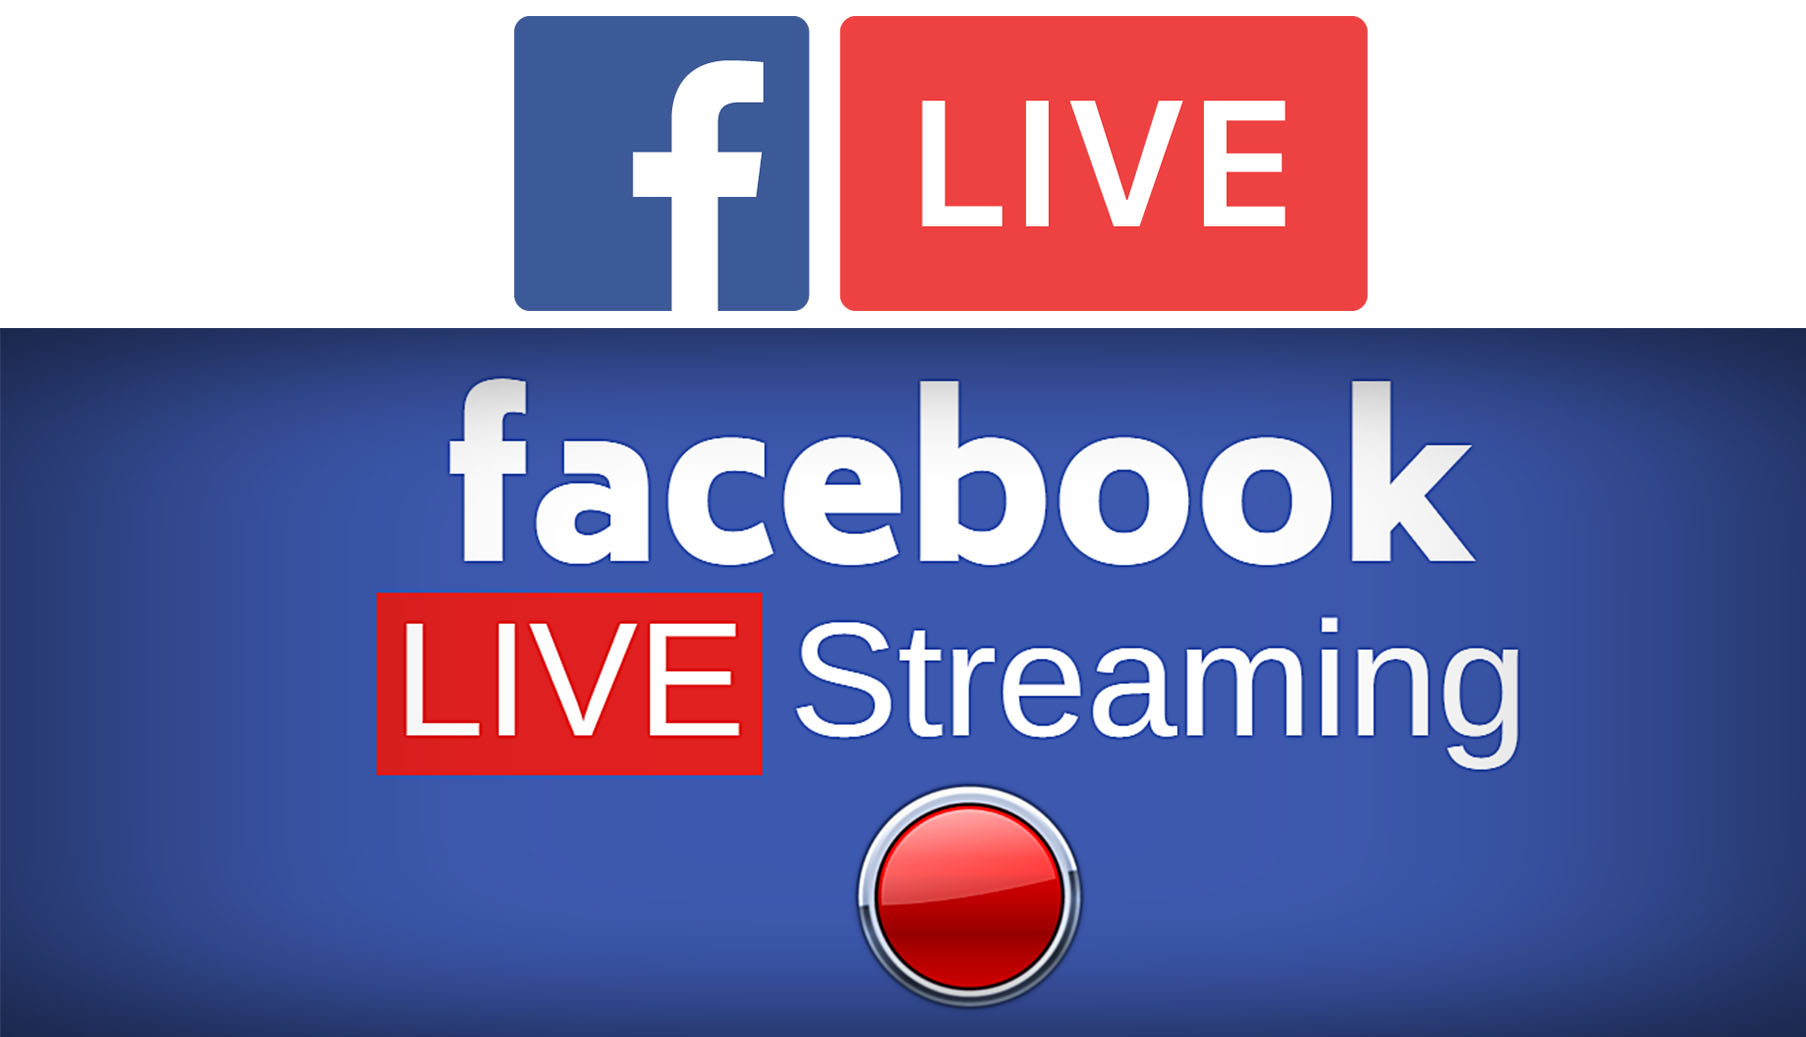 How To Go Live On Facebook - Facebook Live Streaming Now